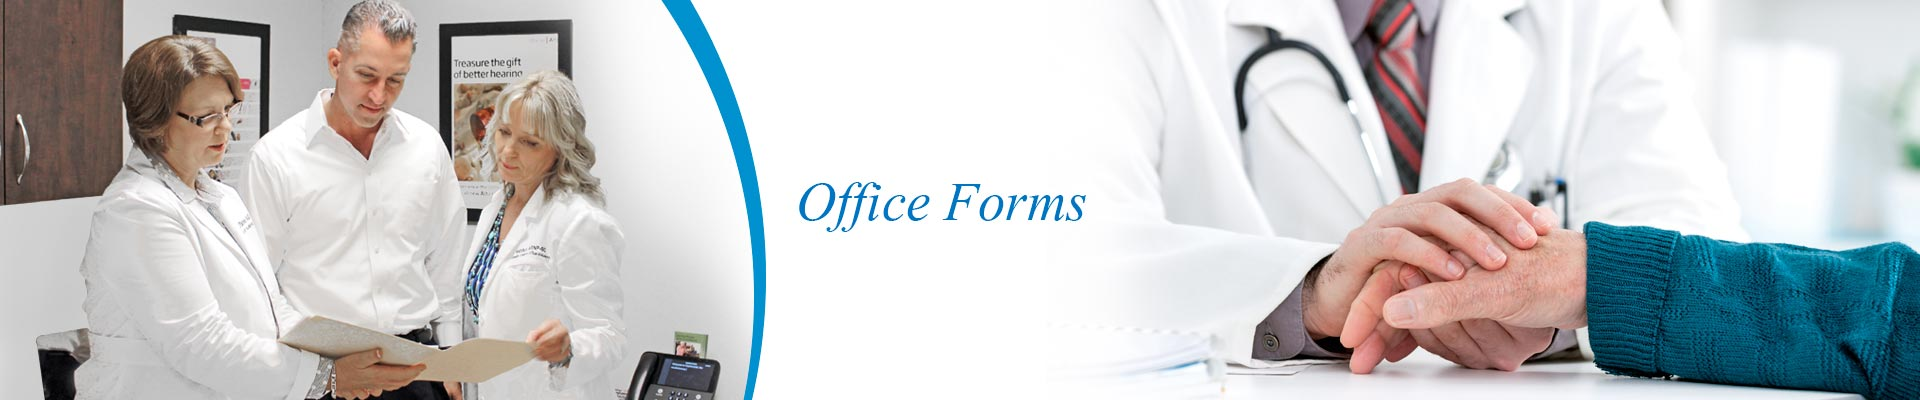 Coastal ENT Office forms